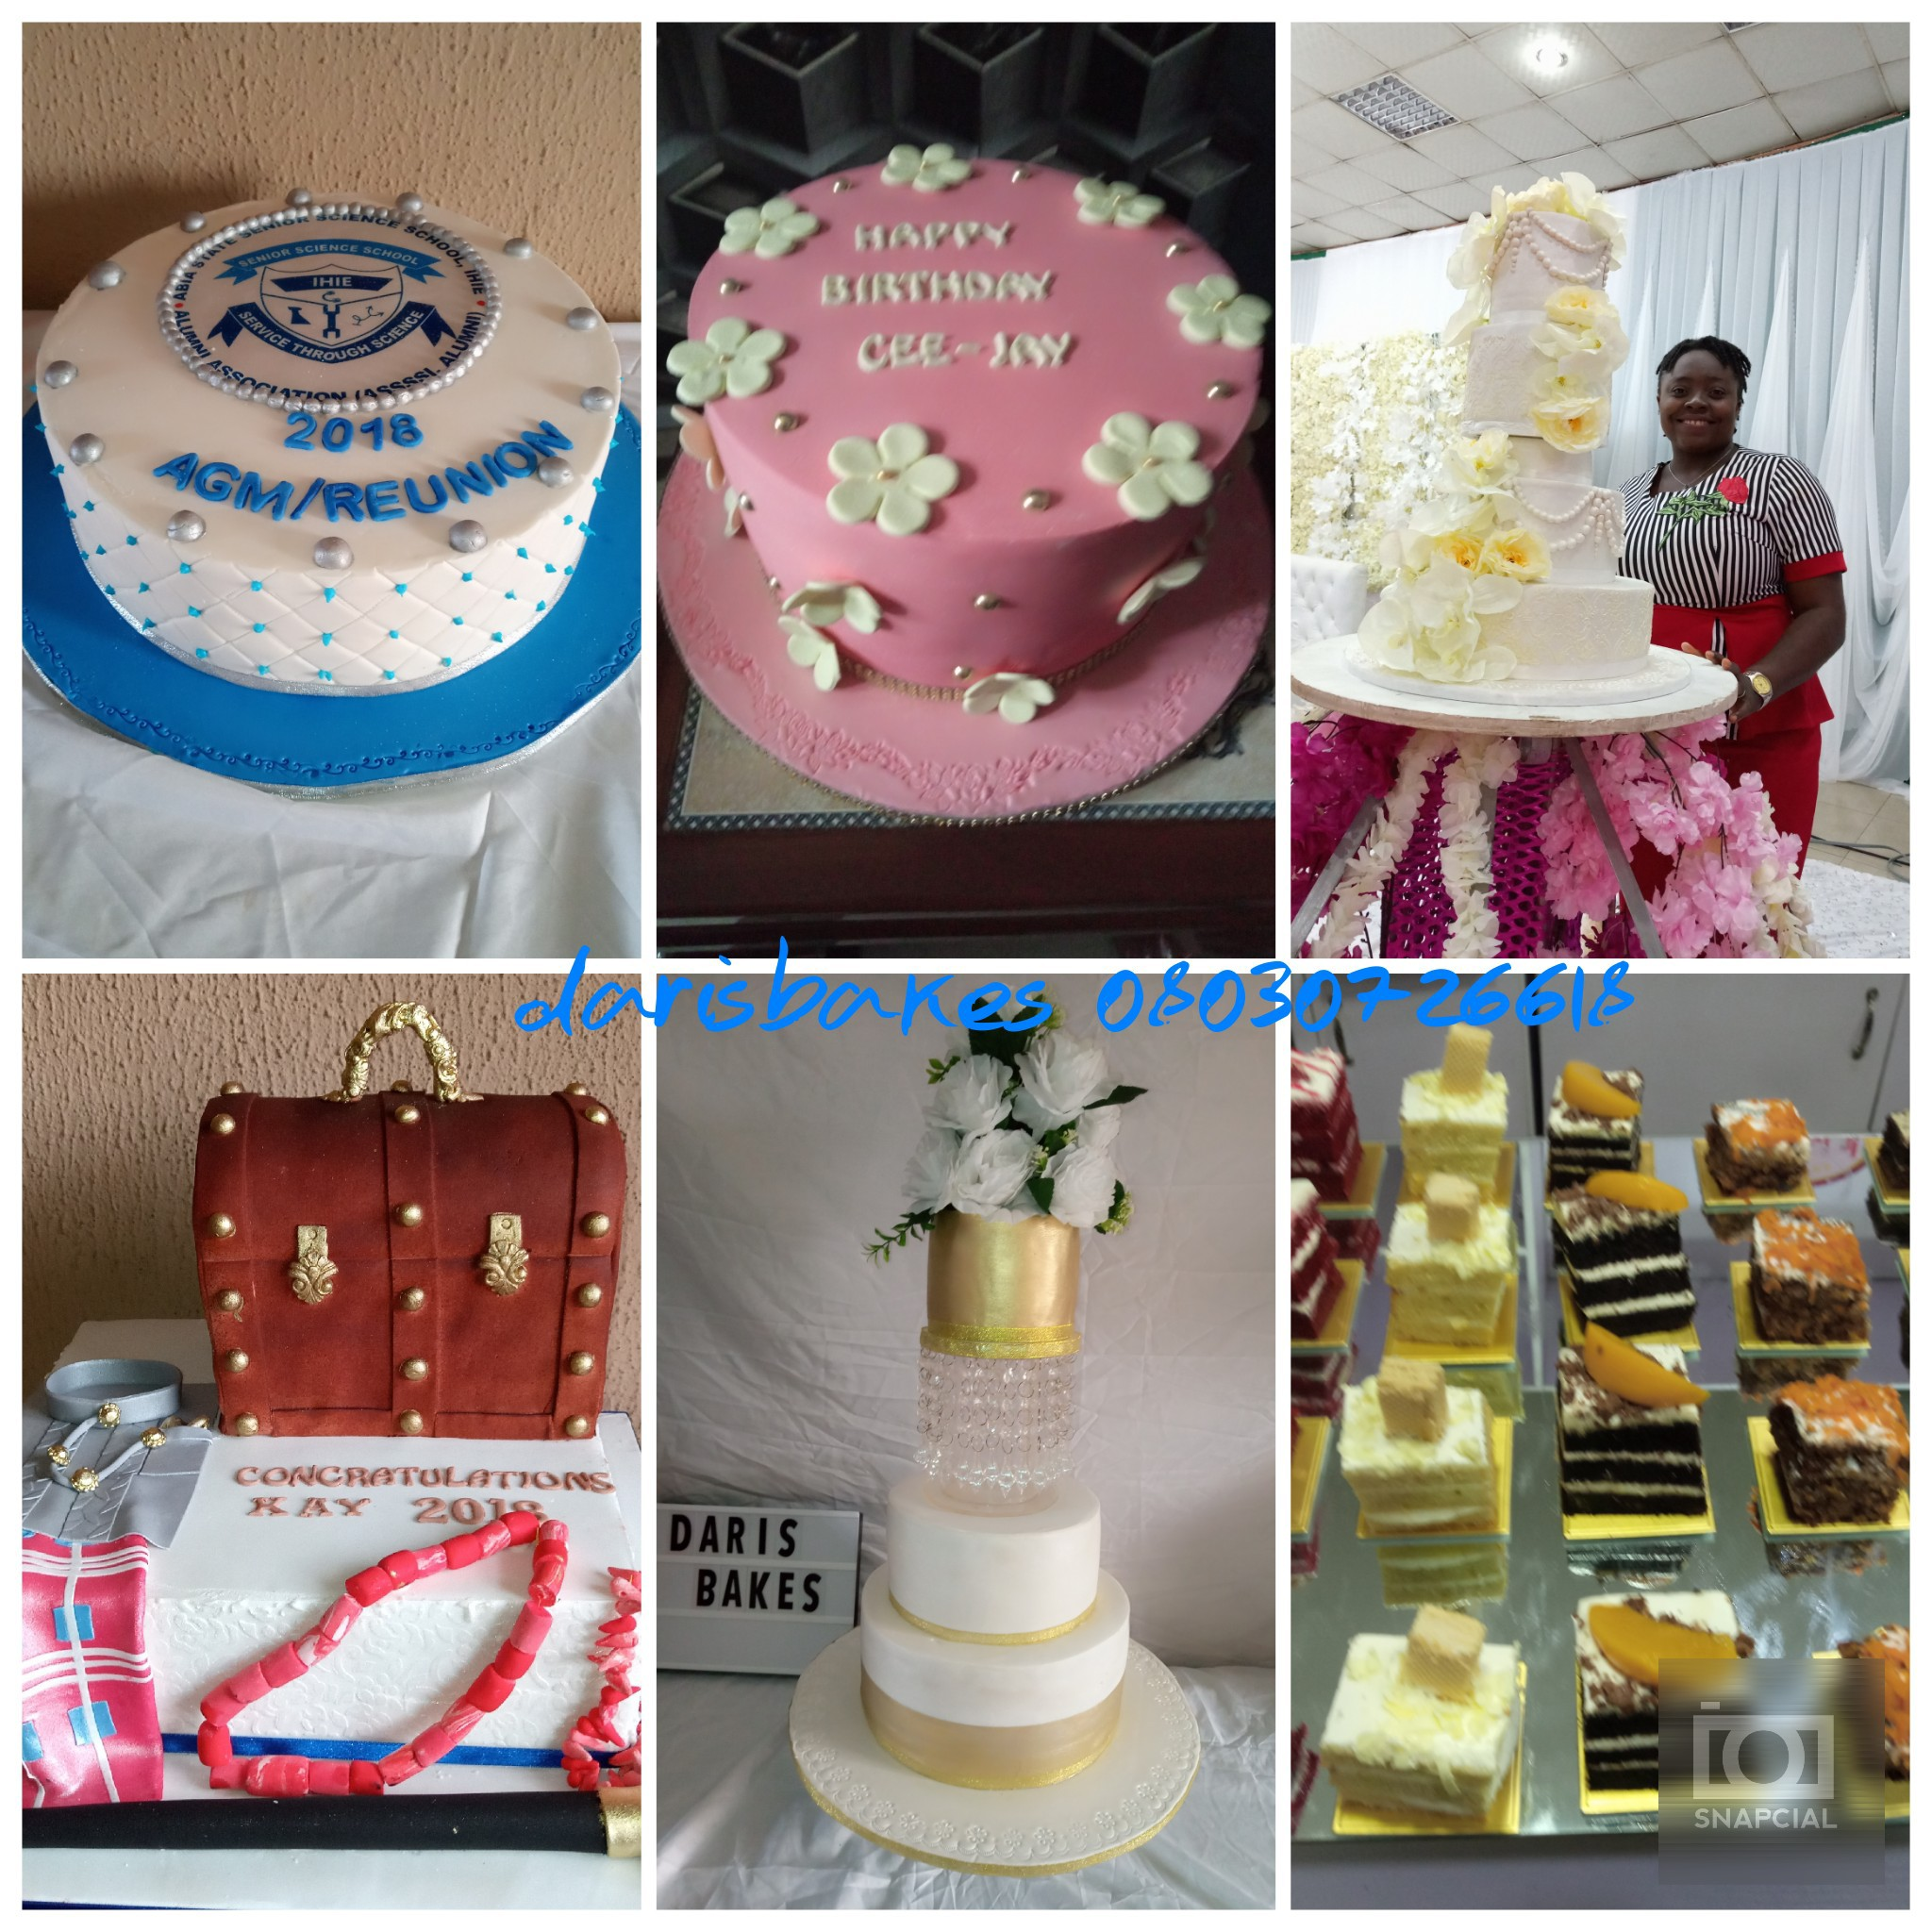 Daris Bakes &Events